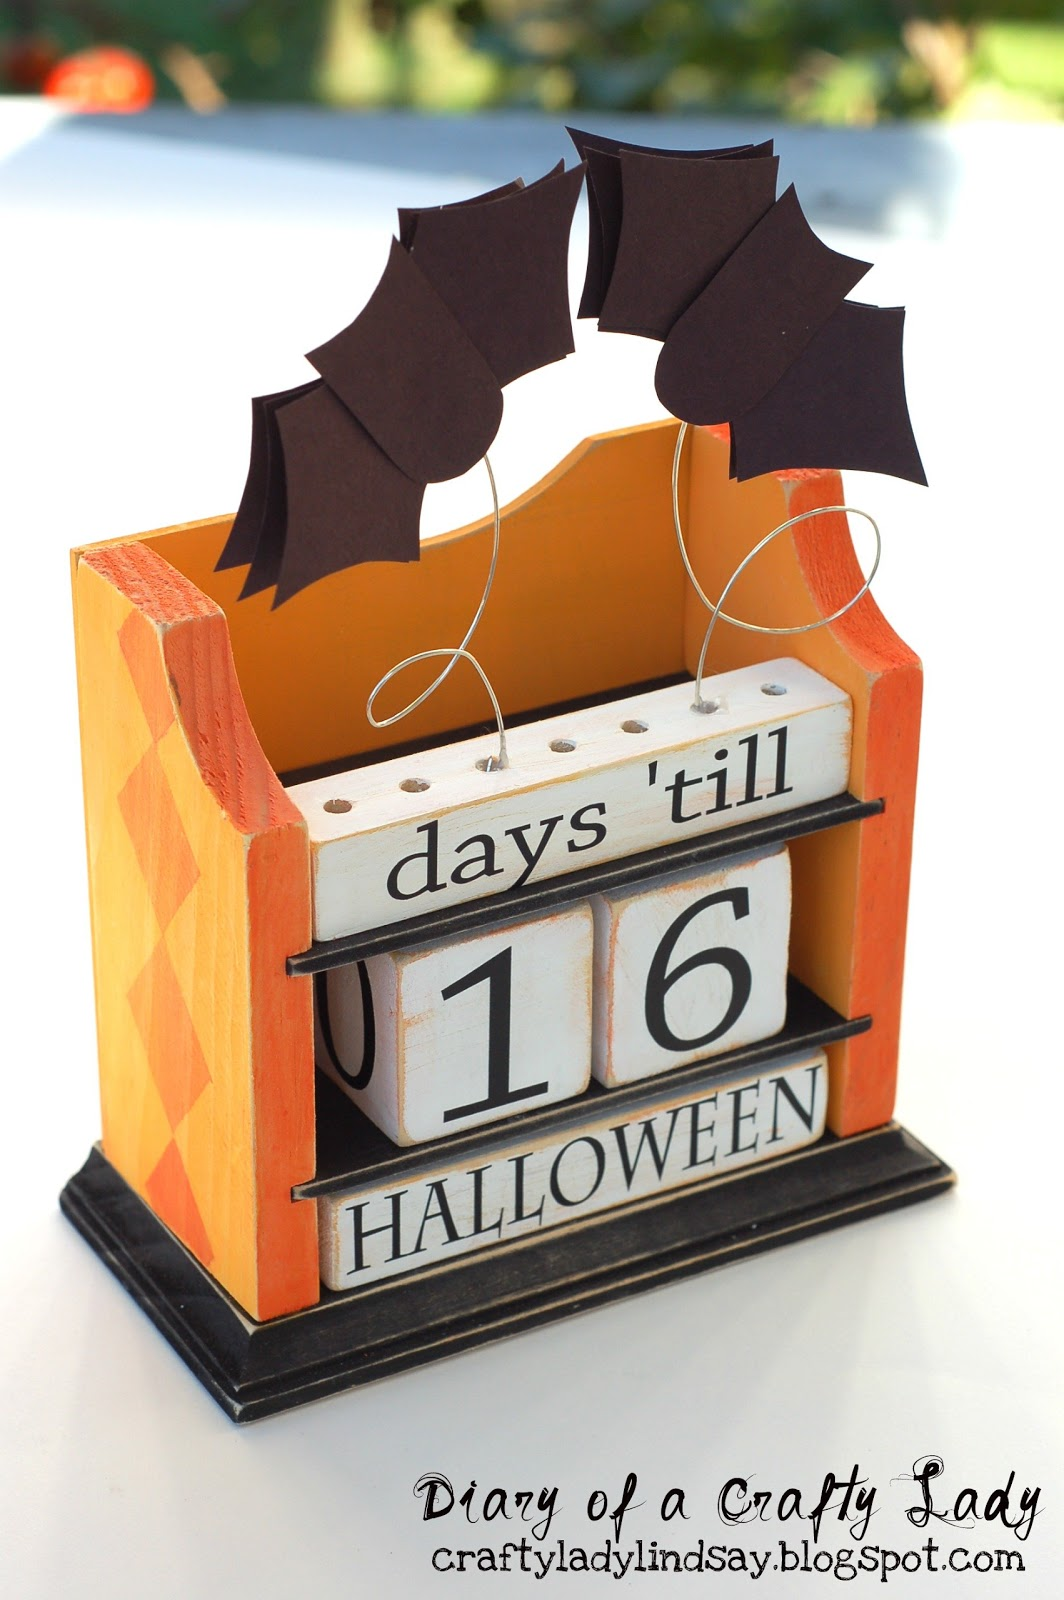 Diary of a Crafty Lady: Halloween Countdown Block Calendar